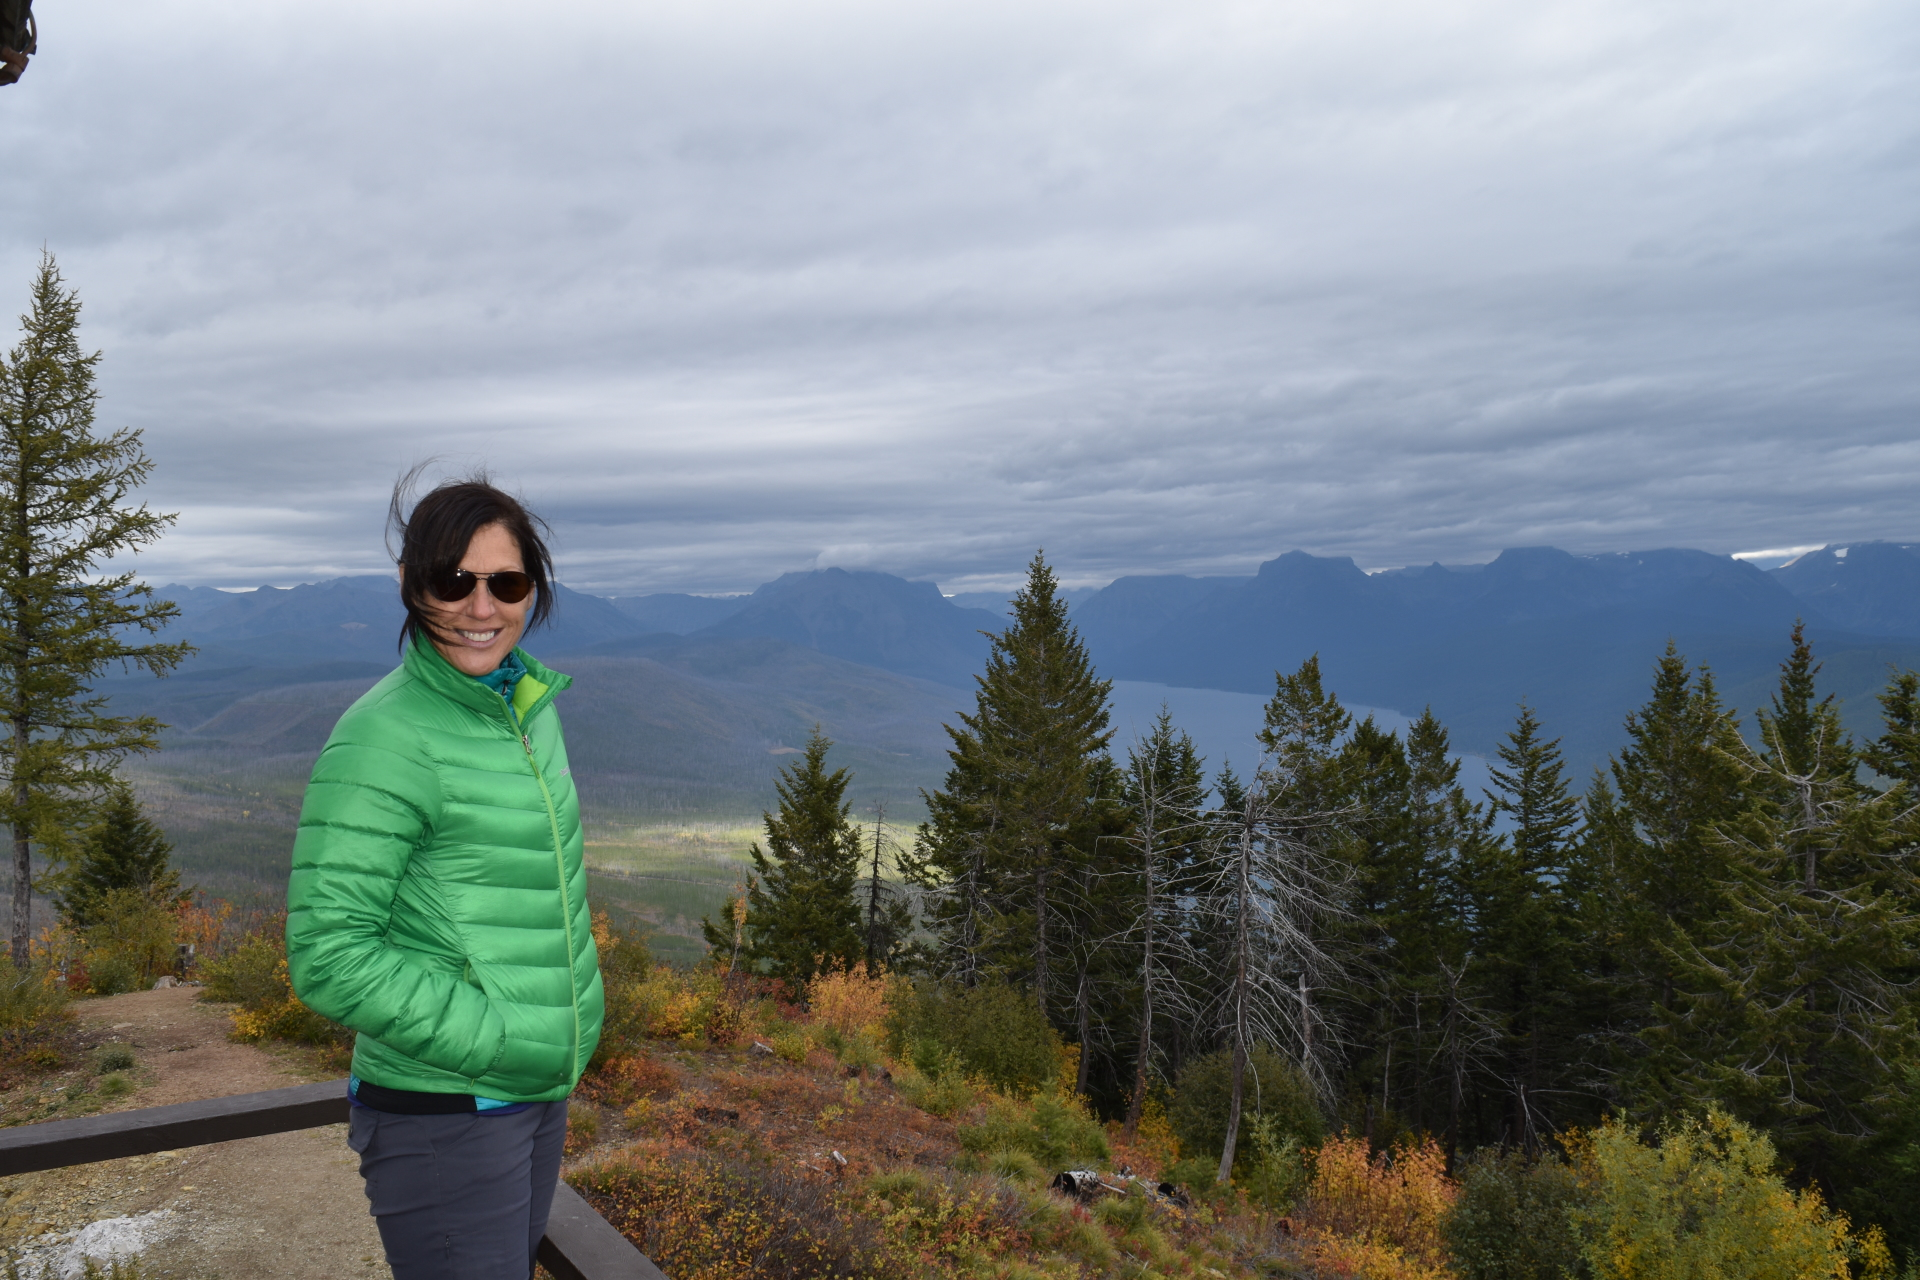 Made it to Apgar Lookout! 7 mile hike round trip.